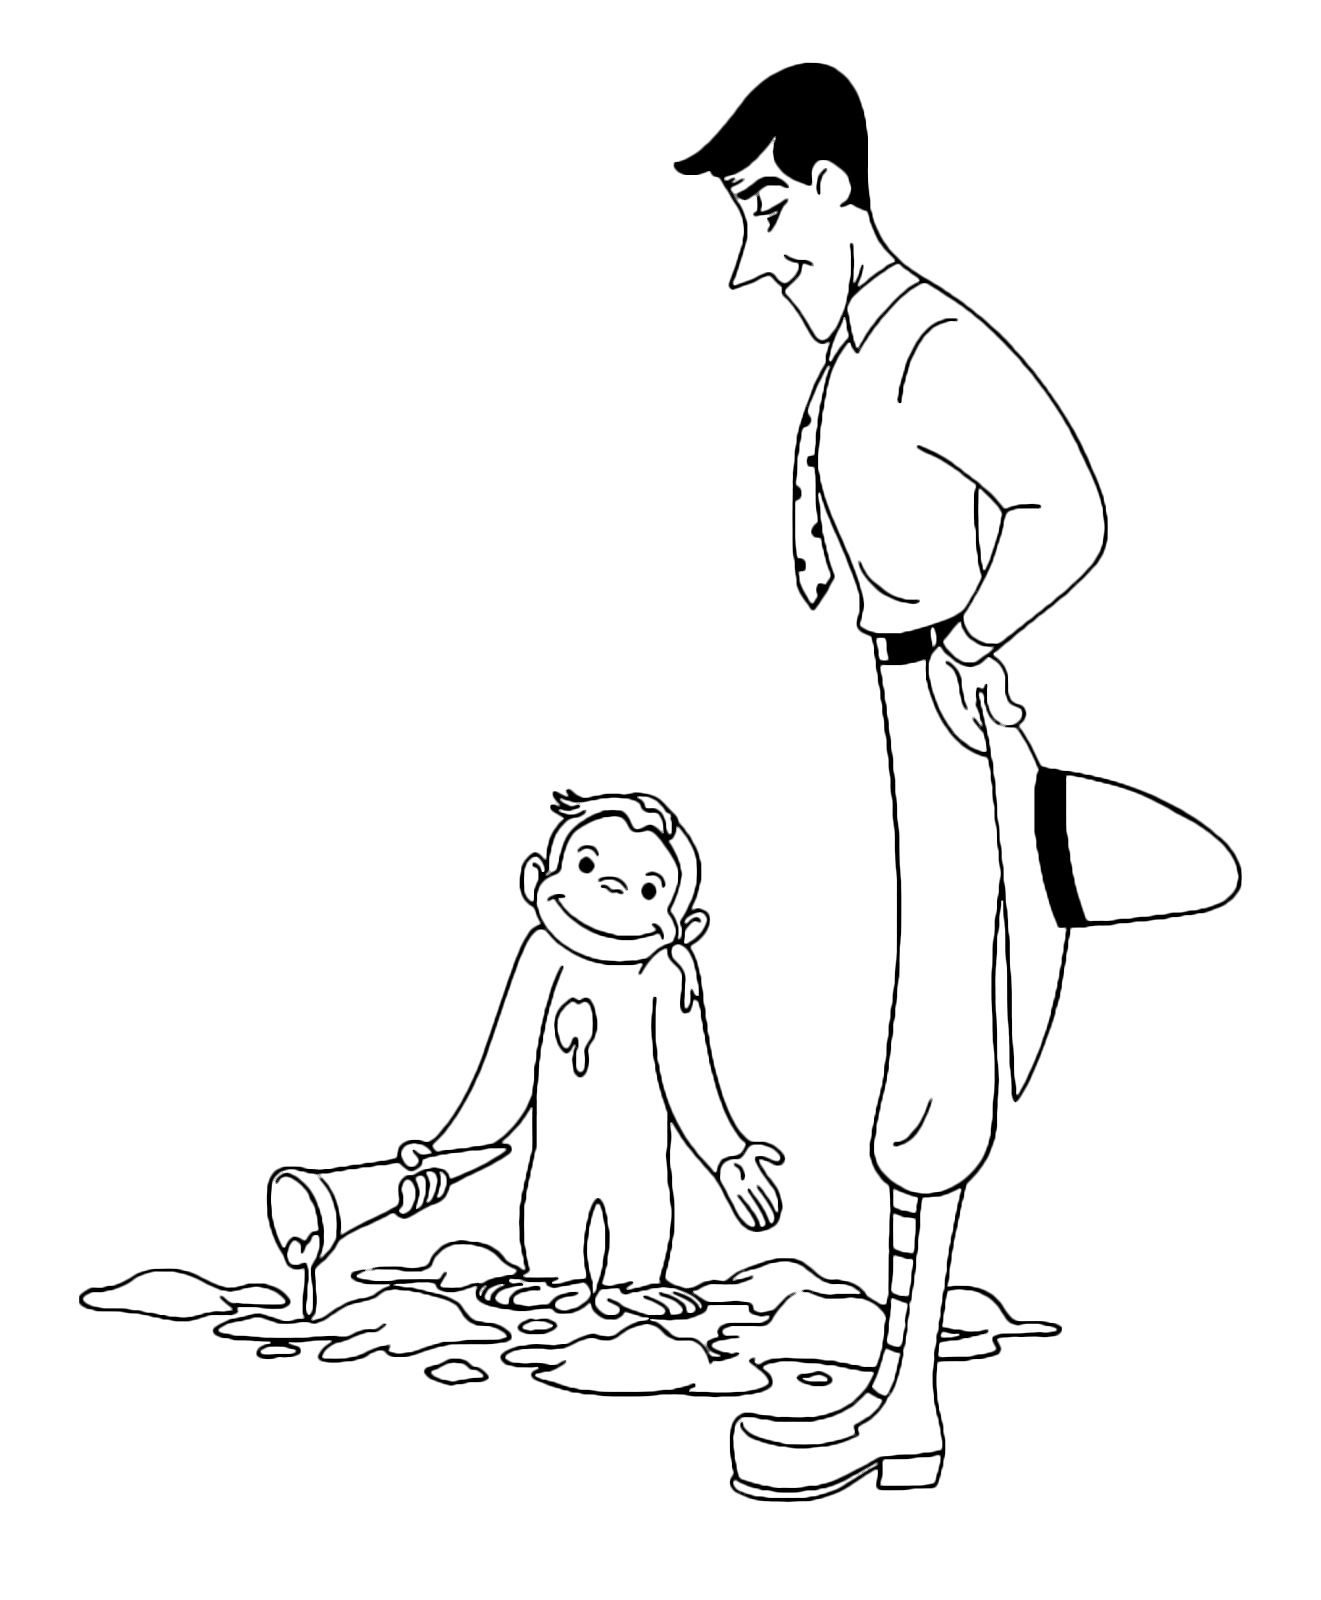 free printable Curious George coloring page | Curious george ... | 1600x1321